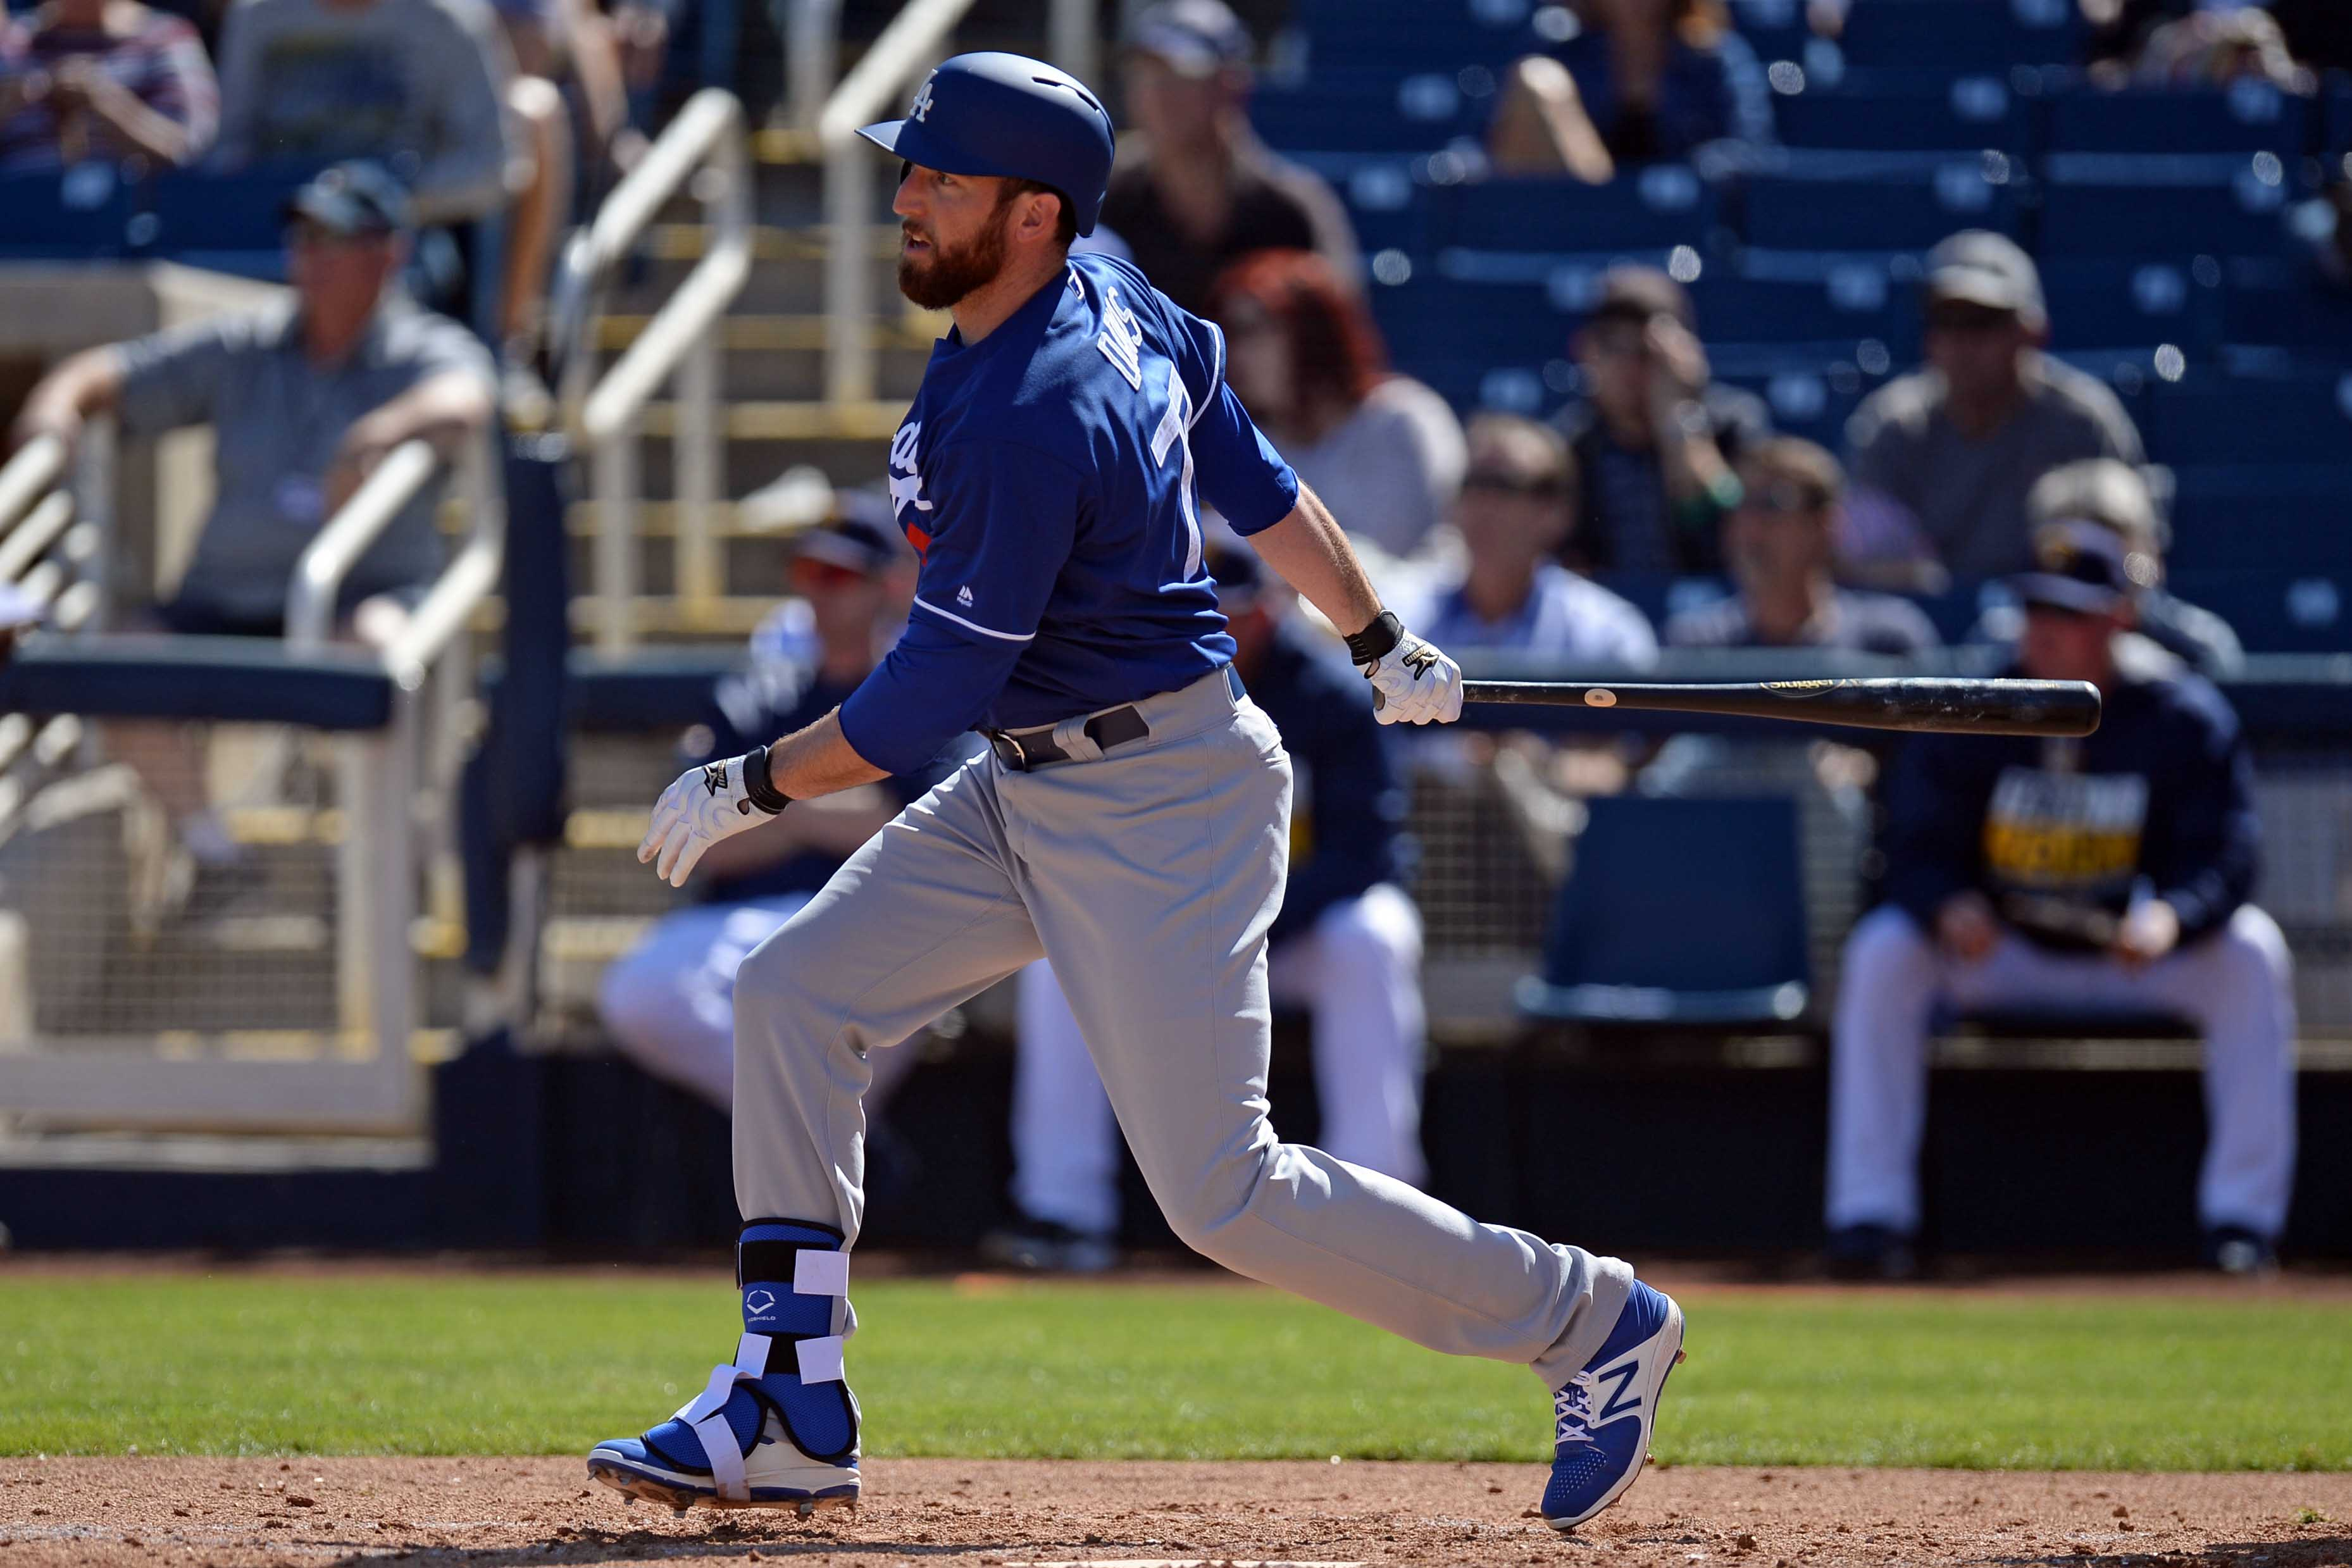 9902478-mlb-spring-training-los-angeles-dodgers-at-milwaukee-brewers